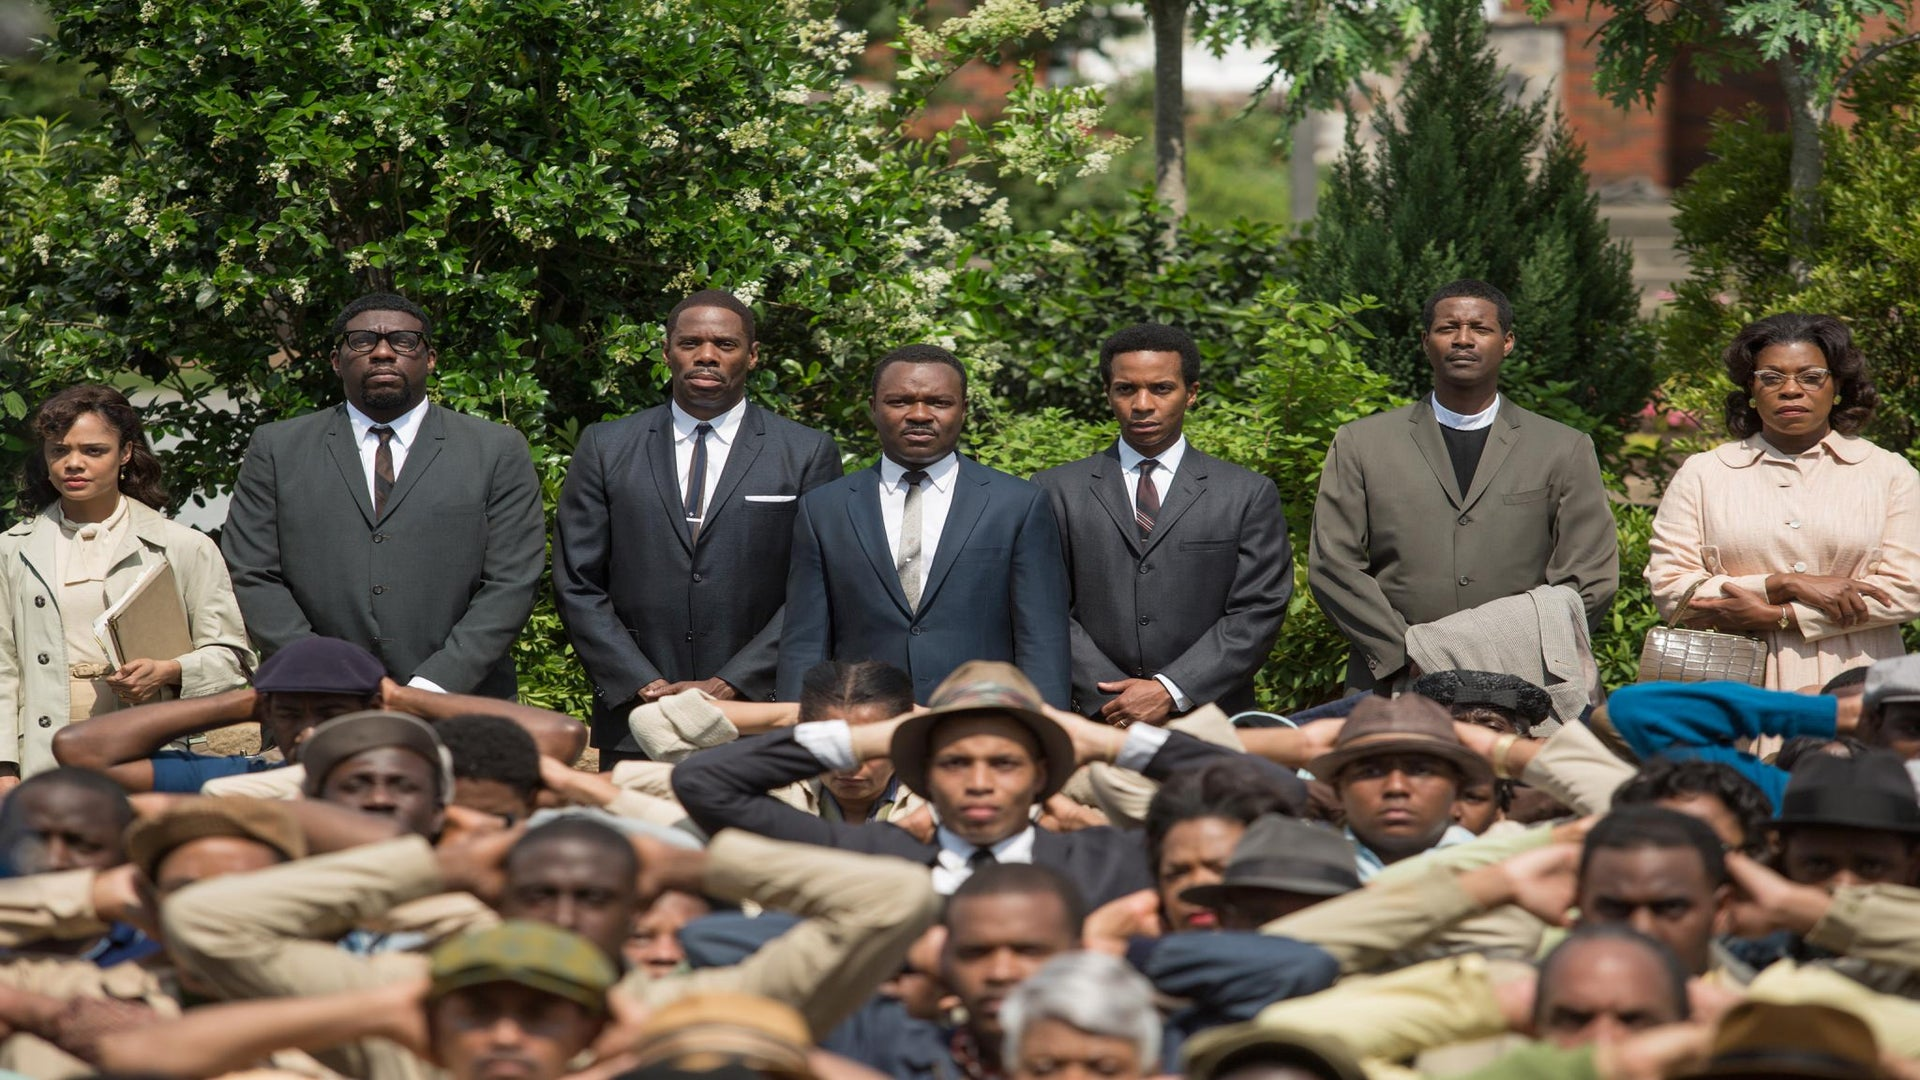 'Selma' Named Top Film of 2014 By African-American Film Critics Association